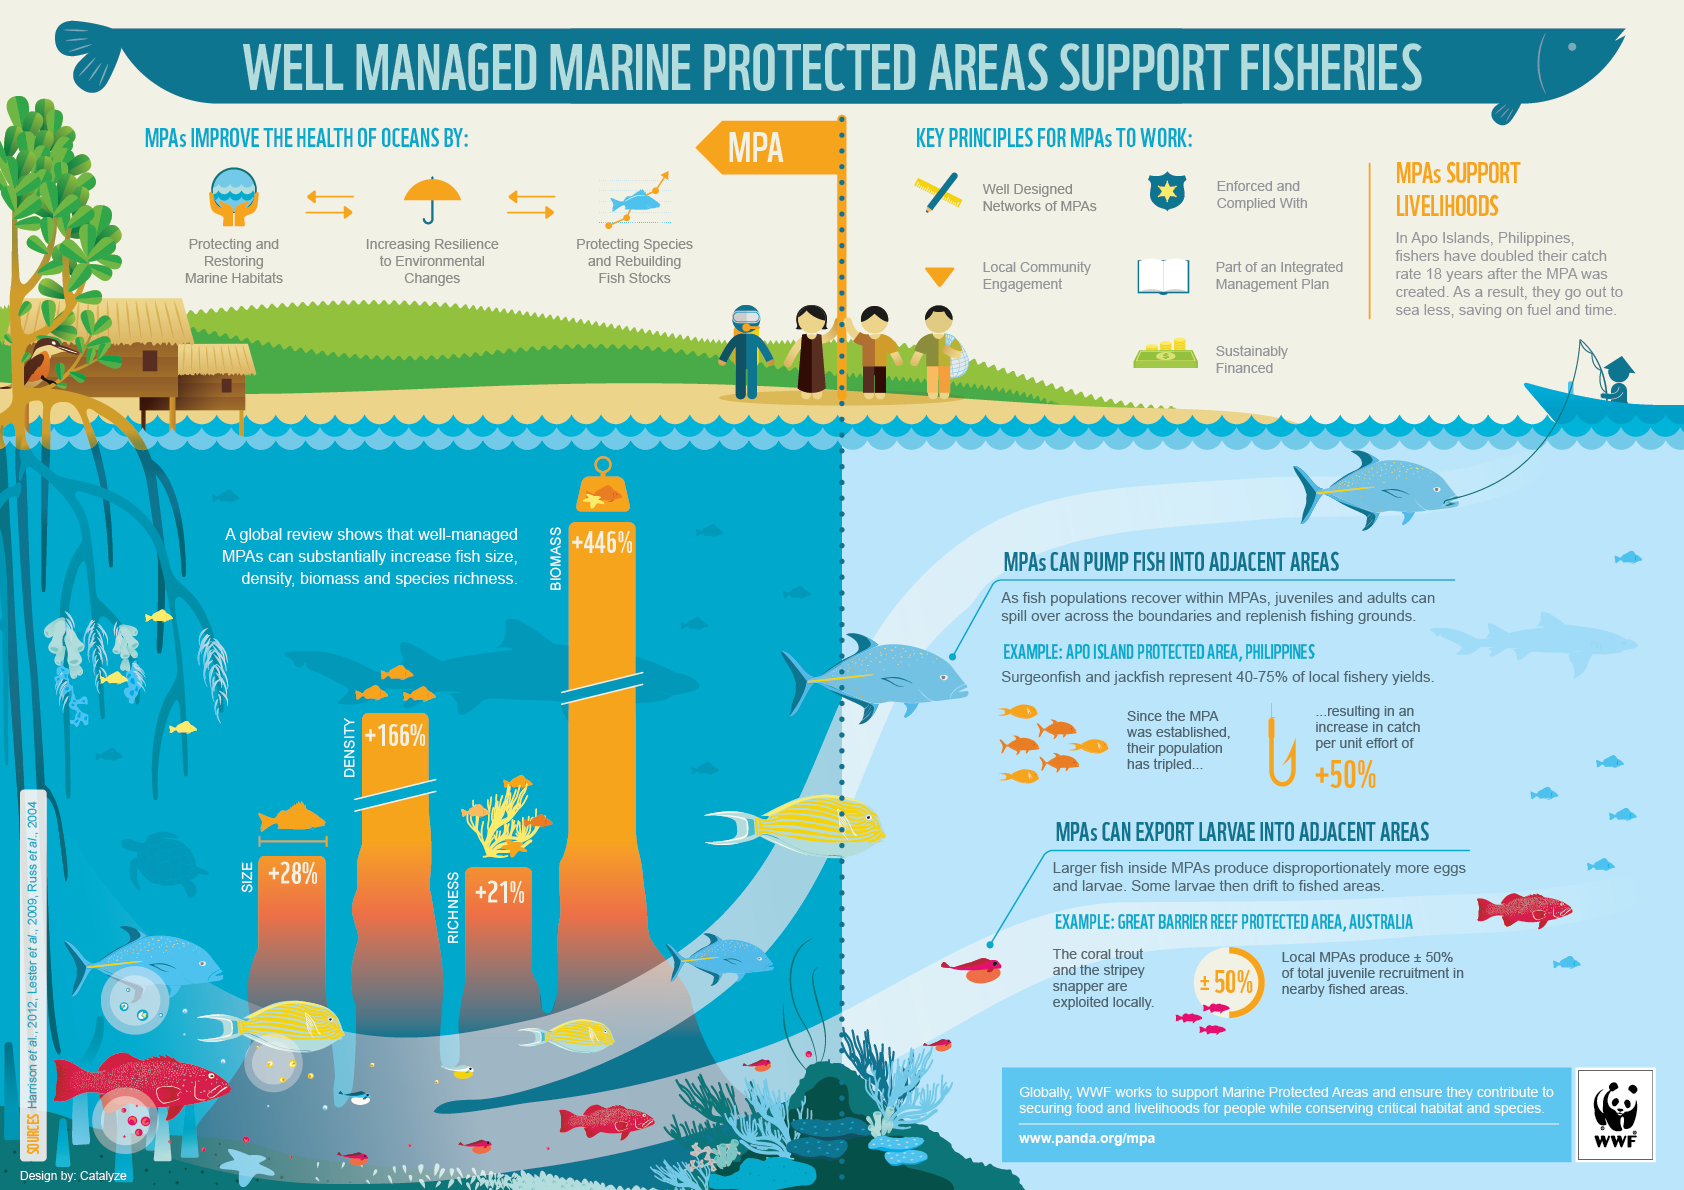 Fisheries benefits of MPAs in tropical ecosystems